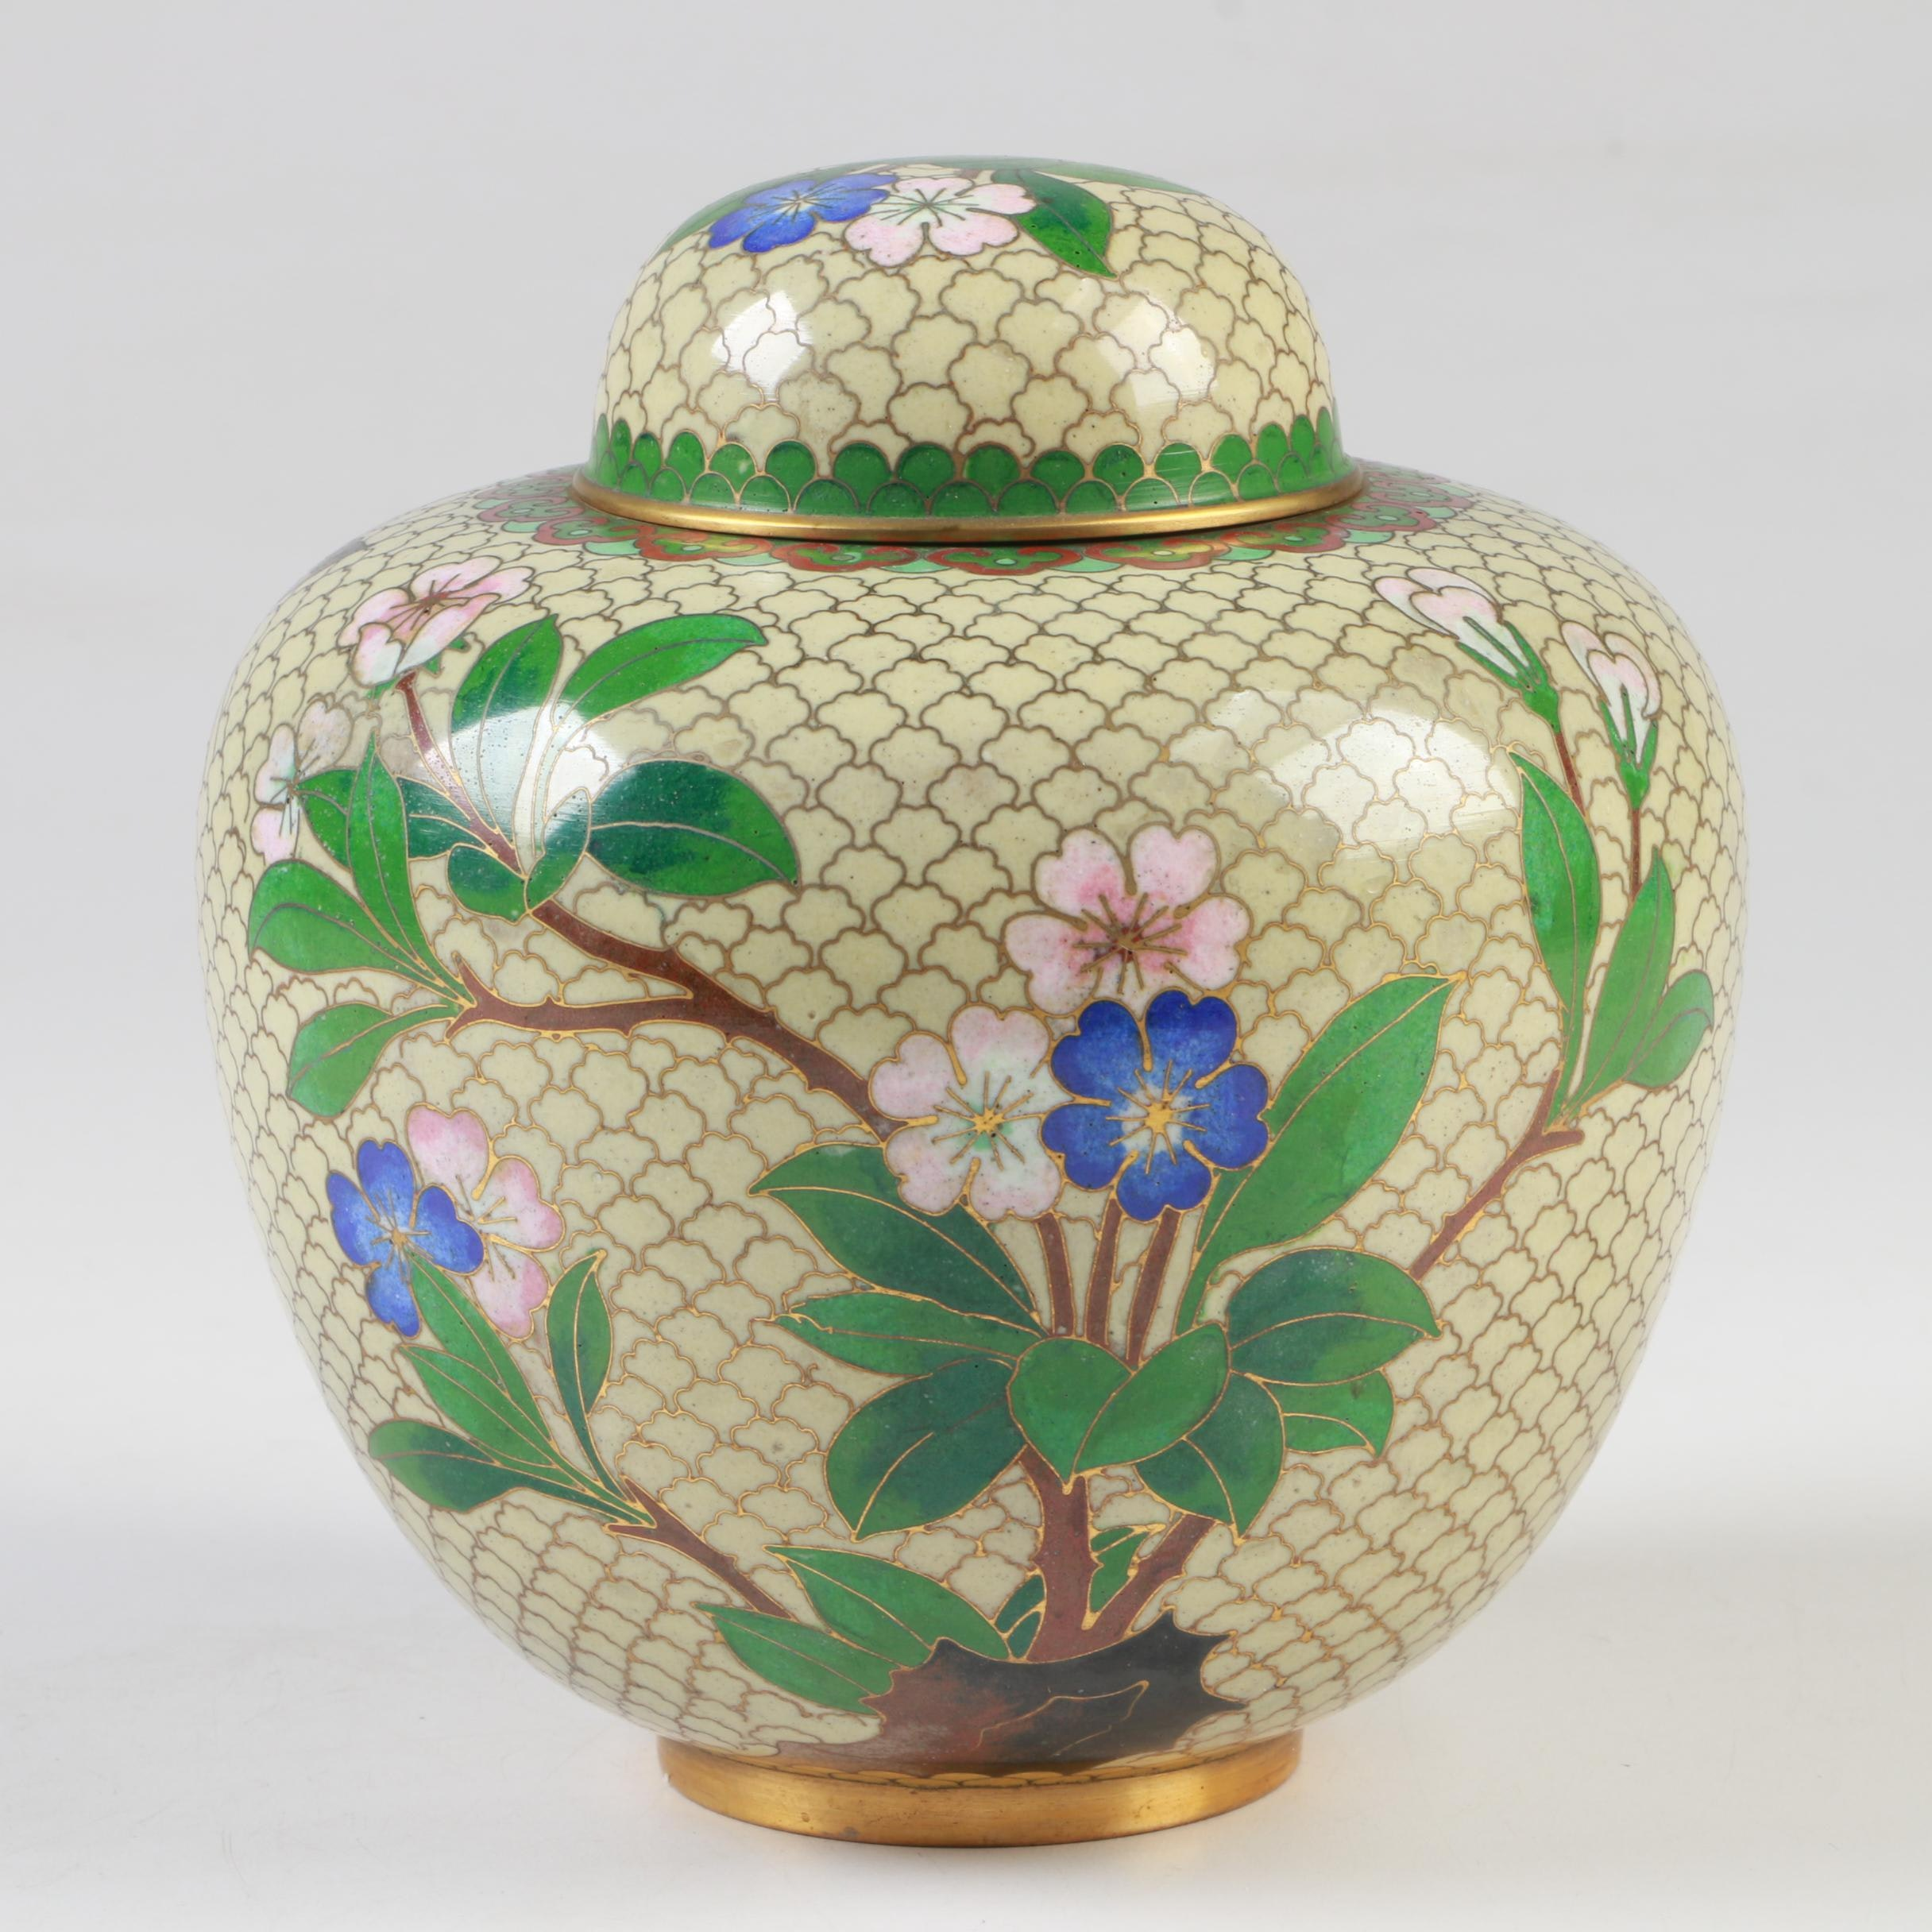 Chinese Cloissoné Ginger Jar, Late 20th Century